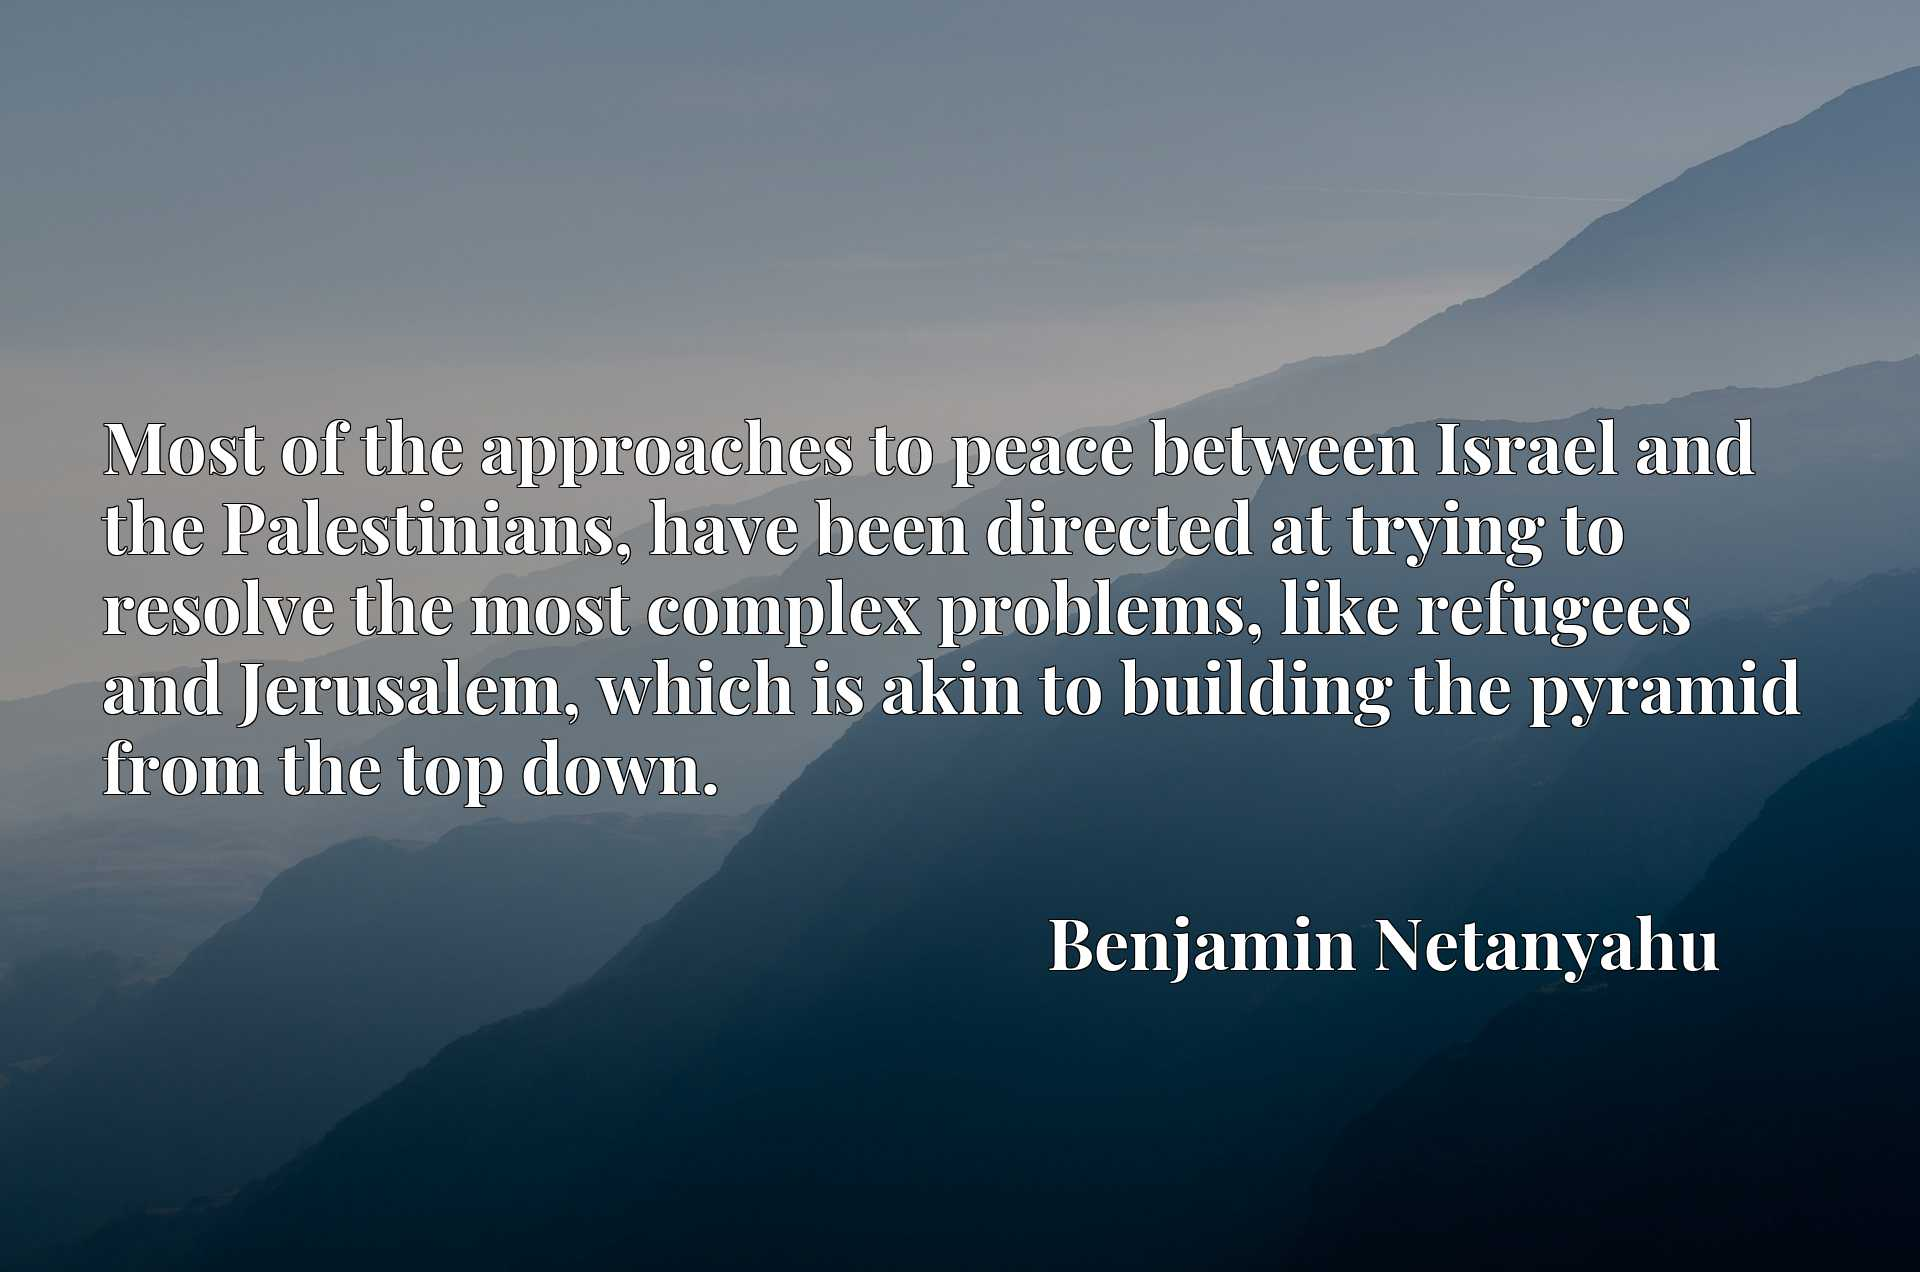 Most of the approaches to peace between Israel and the Palestinians, have been directed at trying to resolve the most complex problems, like refugees and Jerusalem, which is akin to building the pyramid from the top down.